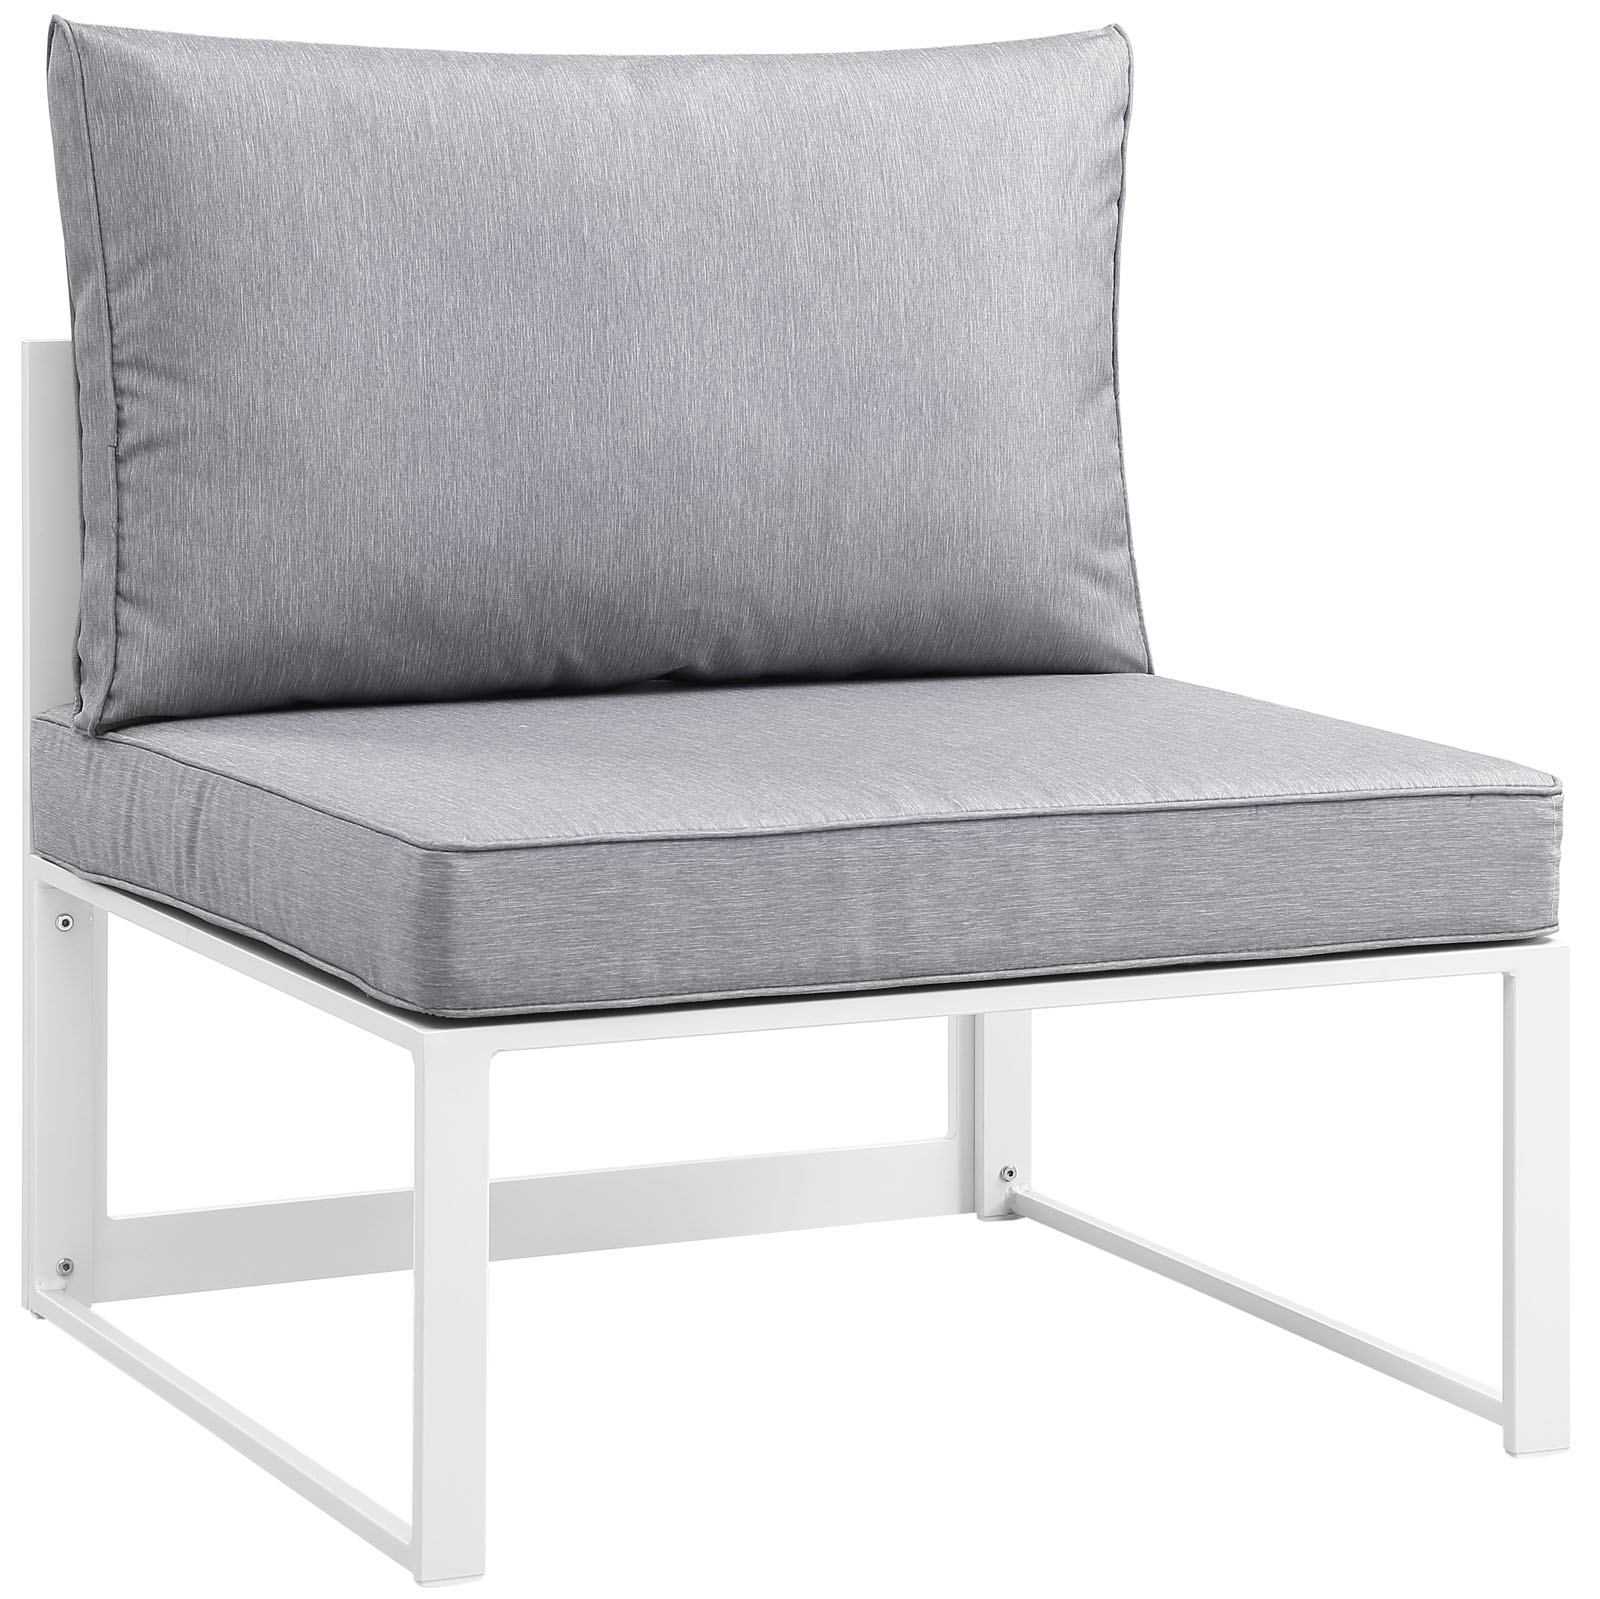 Modern Urban Contemporary Outdoor Patio Armless Chair, White Grey Fabric Steel